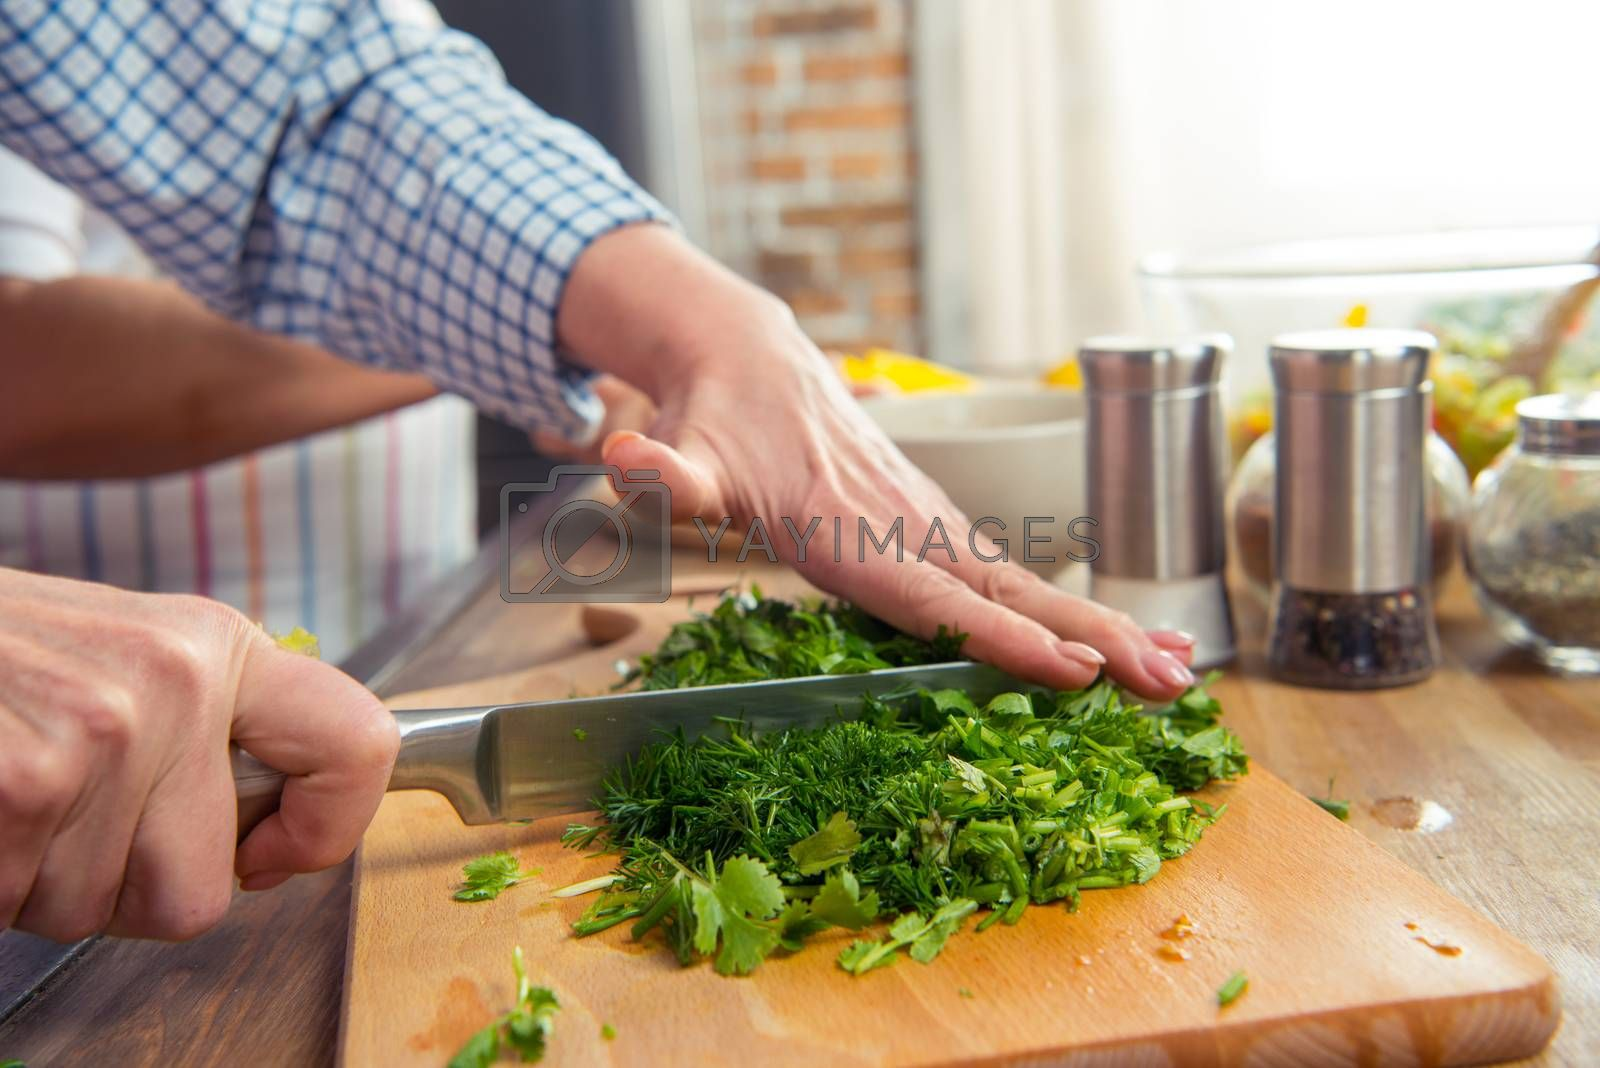 Close-up partial view of woman cutting salad greens